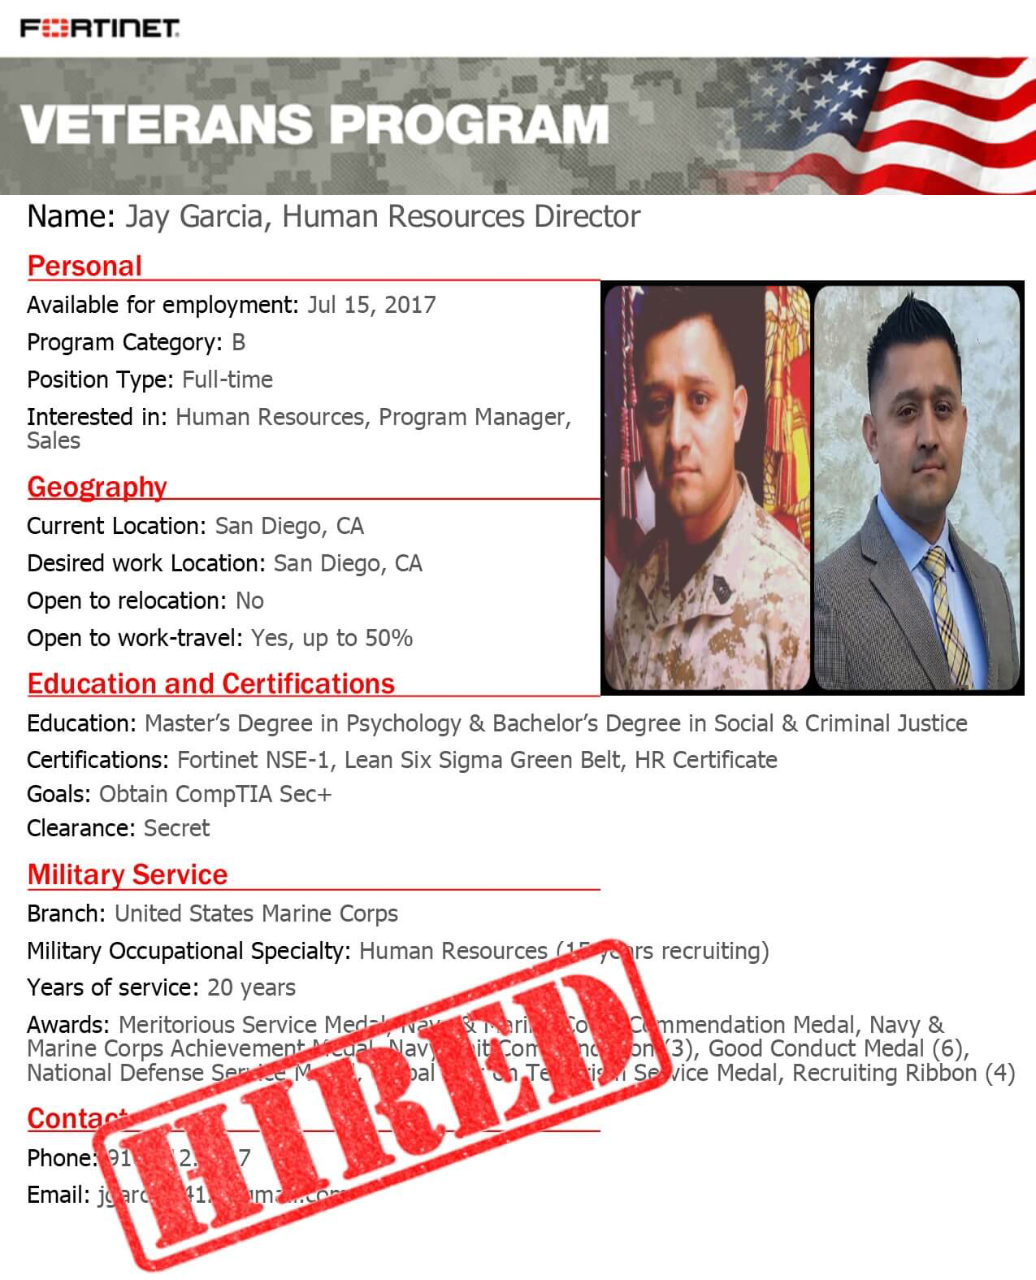 how the fortinet veterans program is helping to bridge the